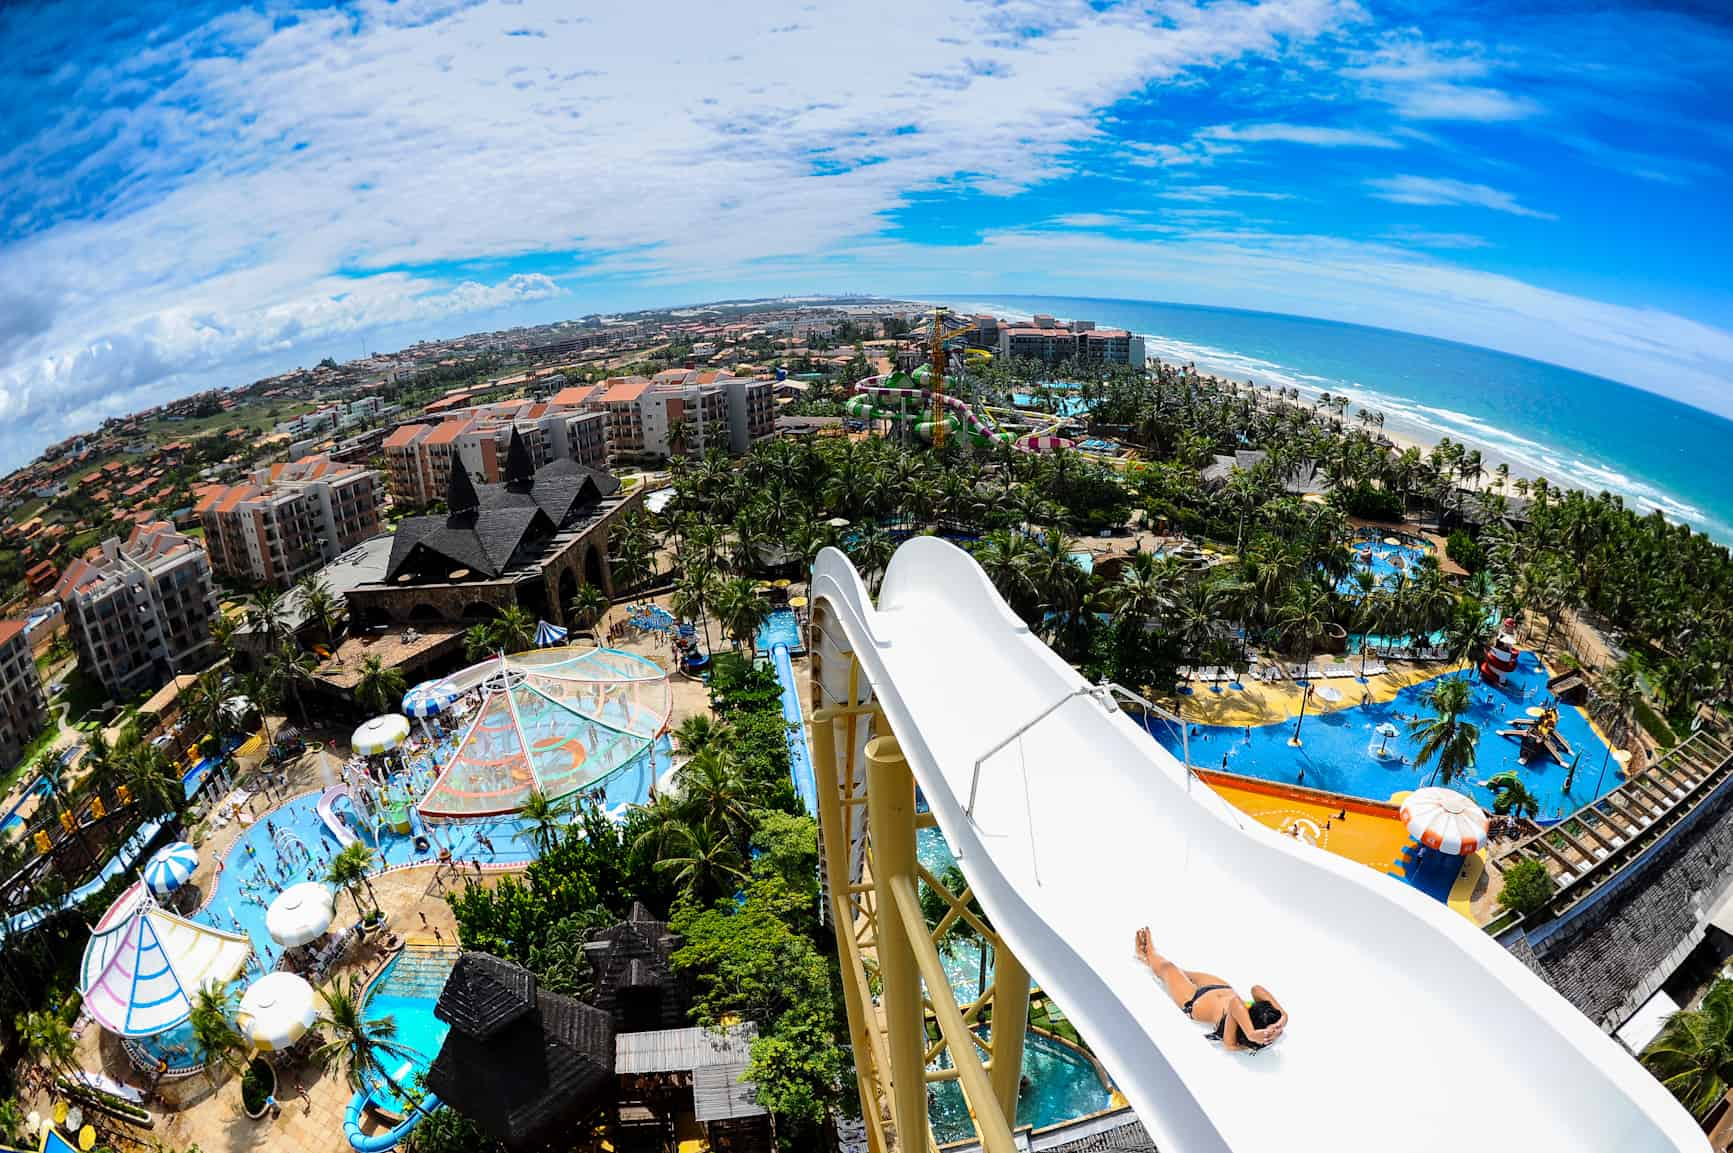 Beach Park, Brazil - Best Waterparks in the World